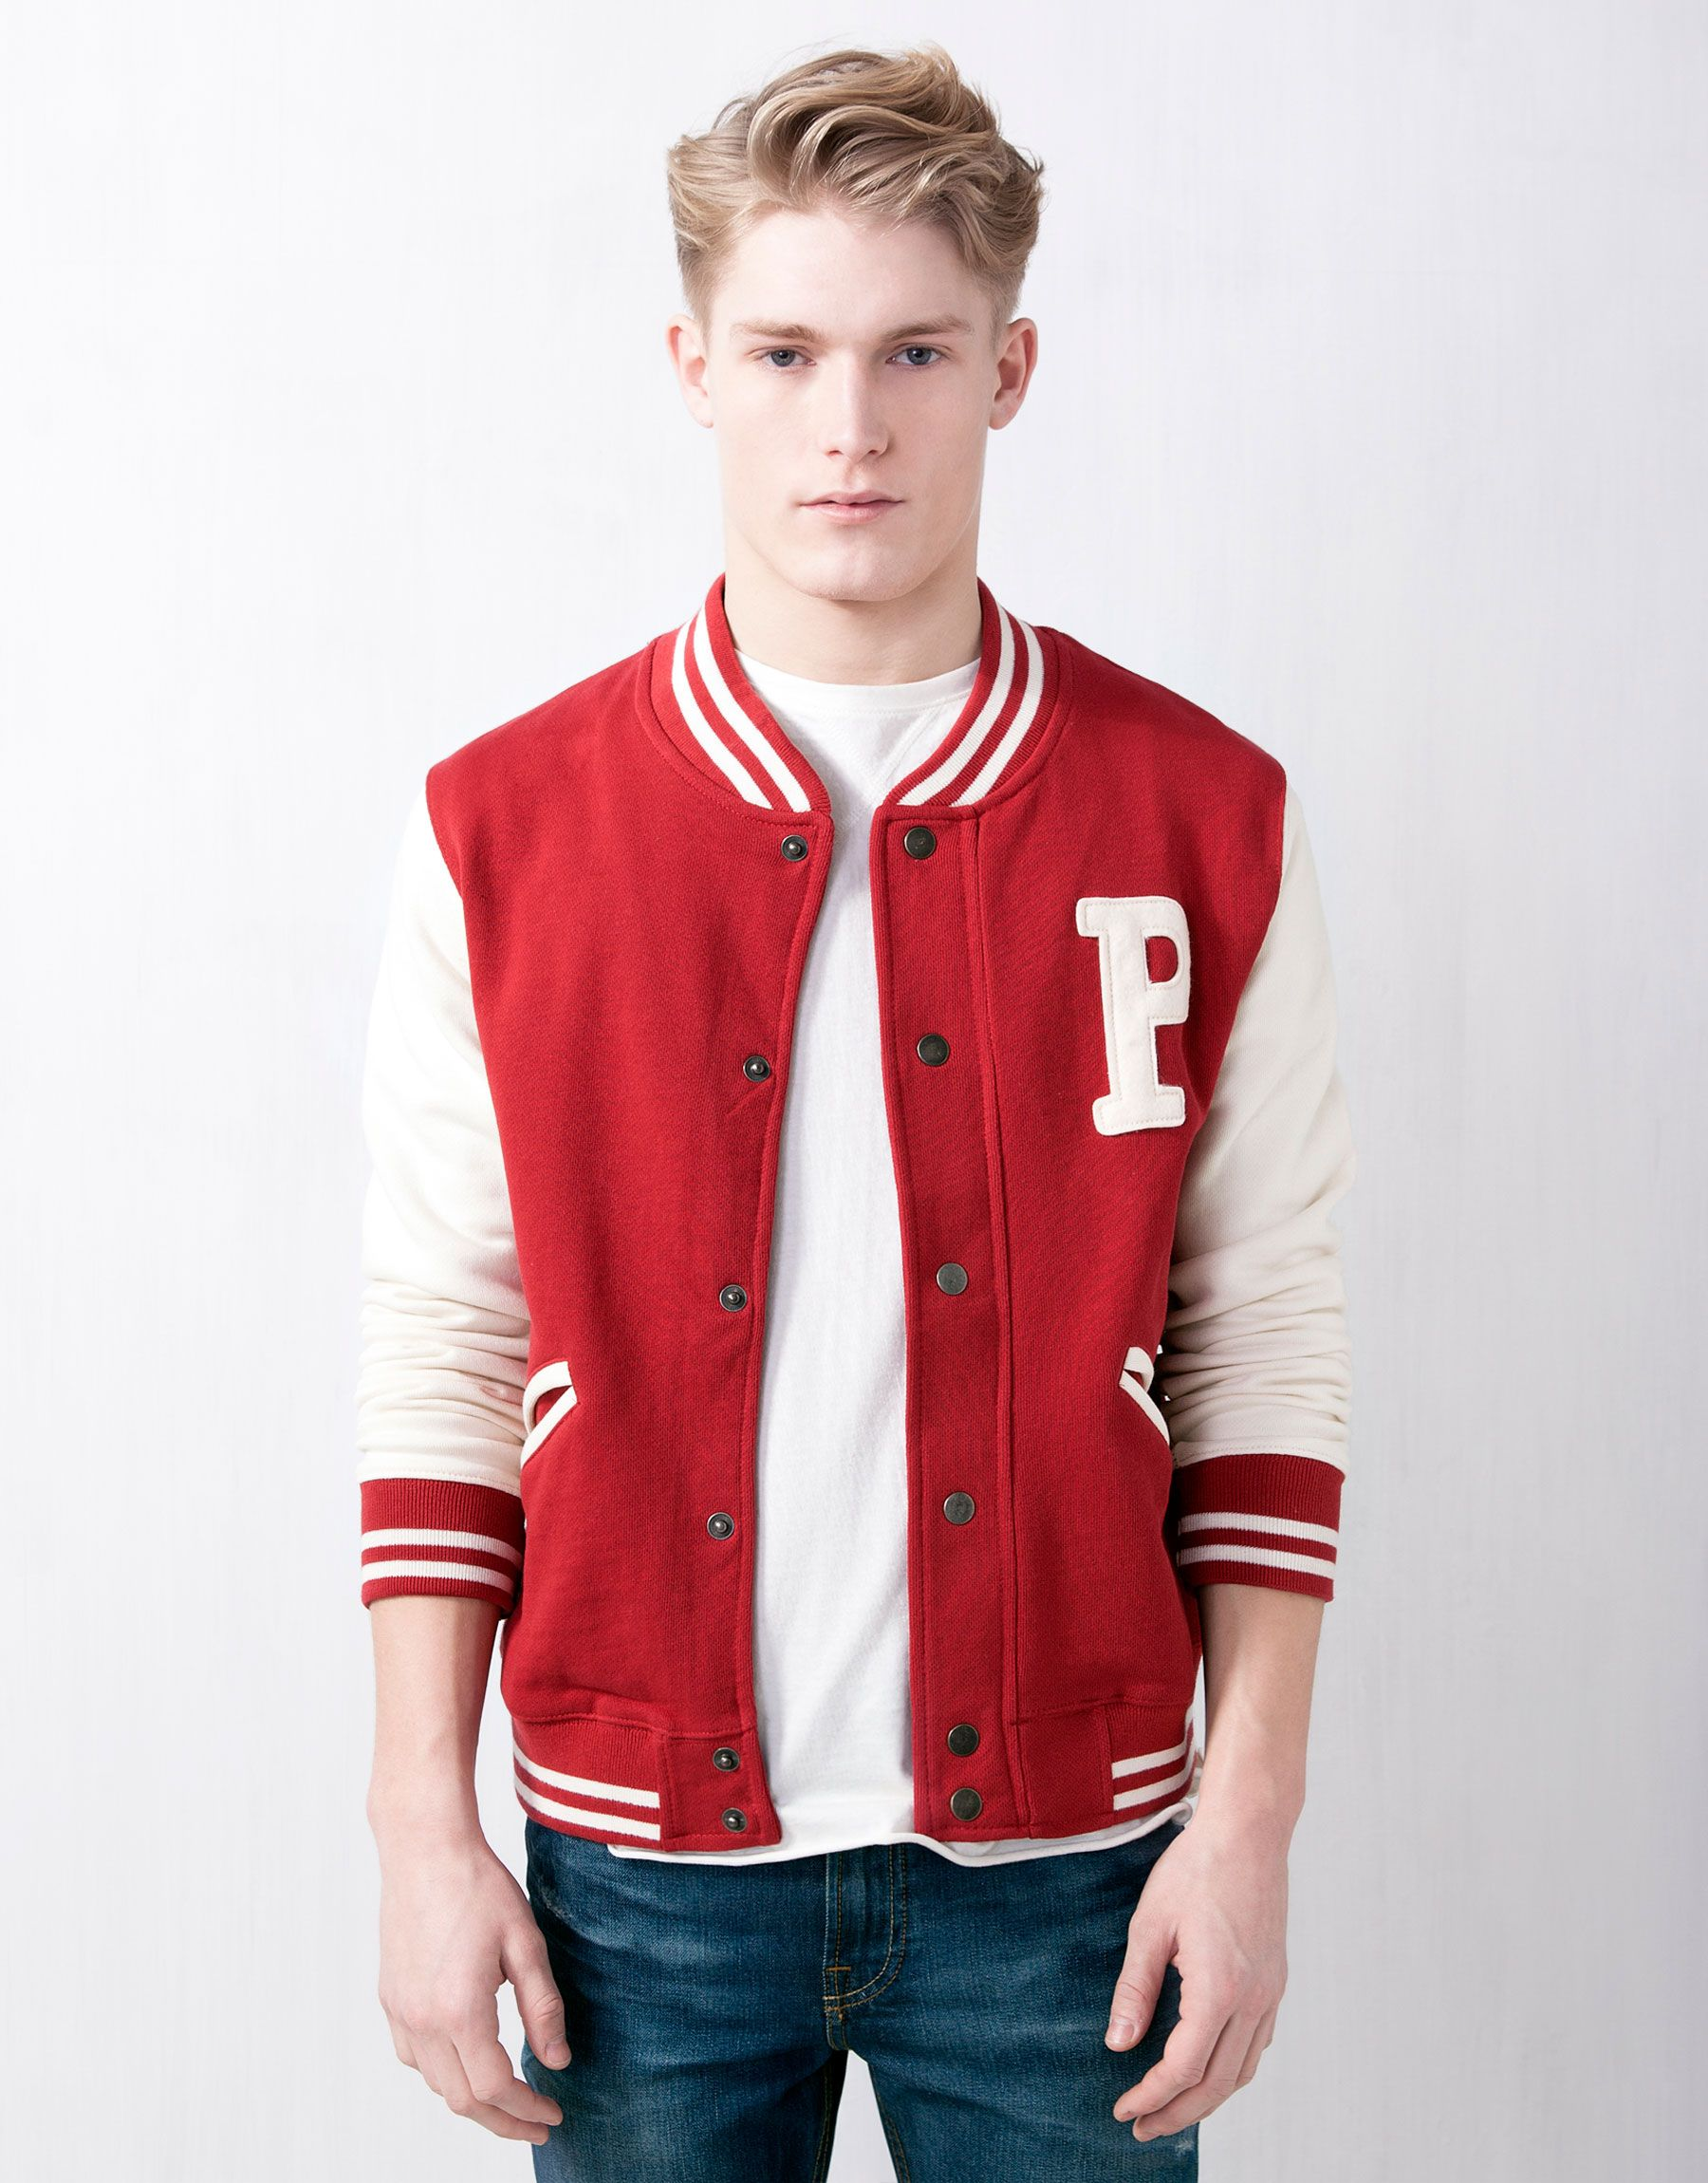 Pull And Bear Baseball Jacket Workout Tops For Women Baseball Clothing And Equipment Gym Tops